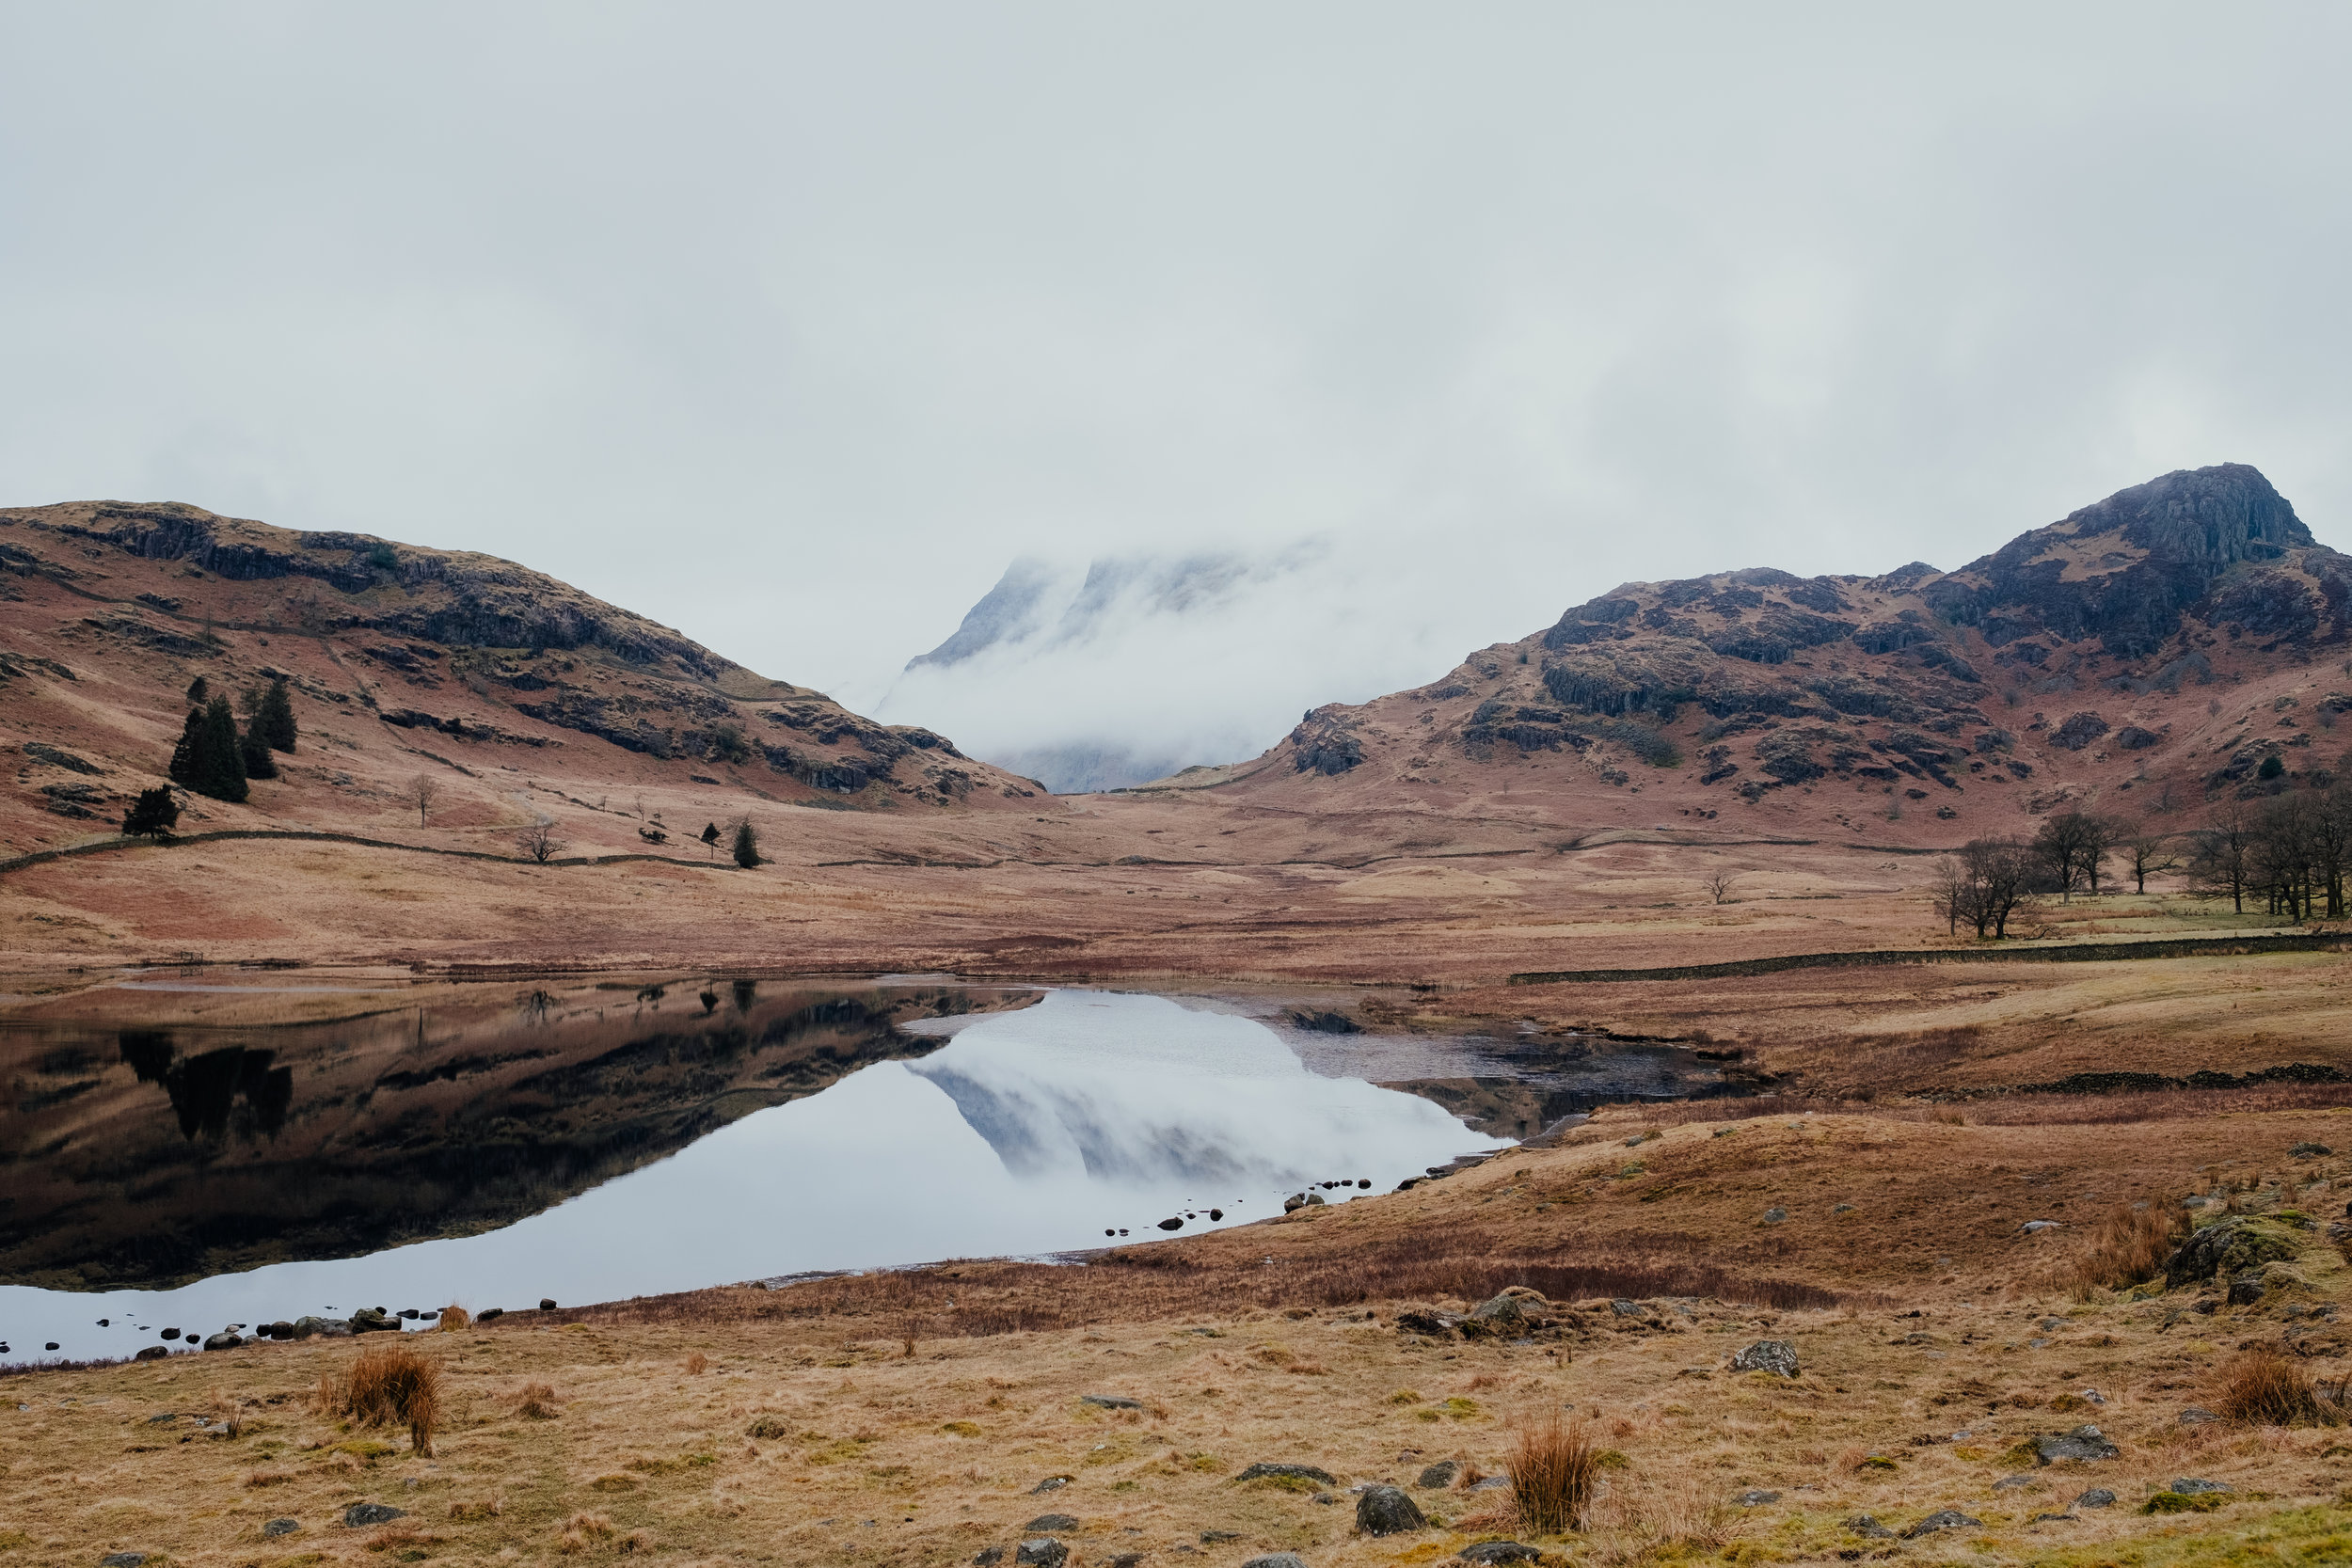 Blea Tarn in the Lake District covered in mist